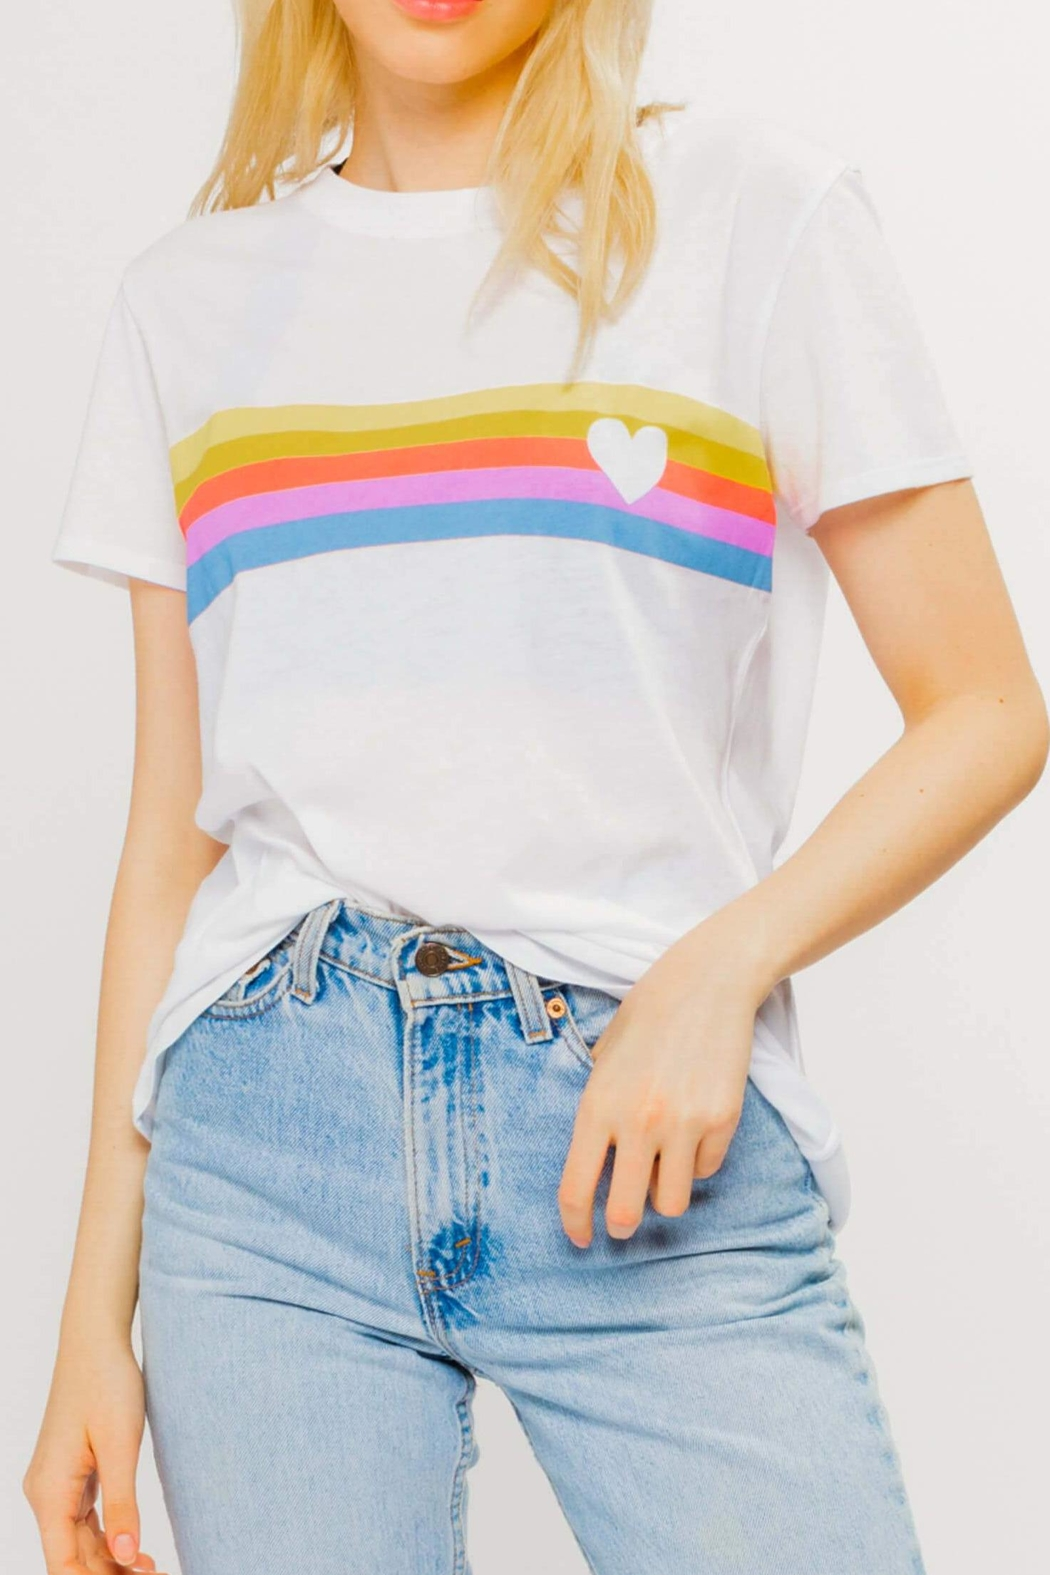 sub_urban Riot Heart Stripe Loose-Tee - Main Image